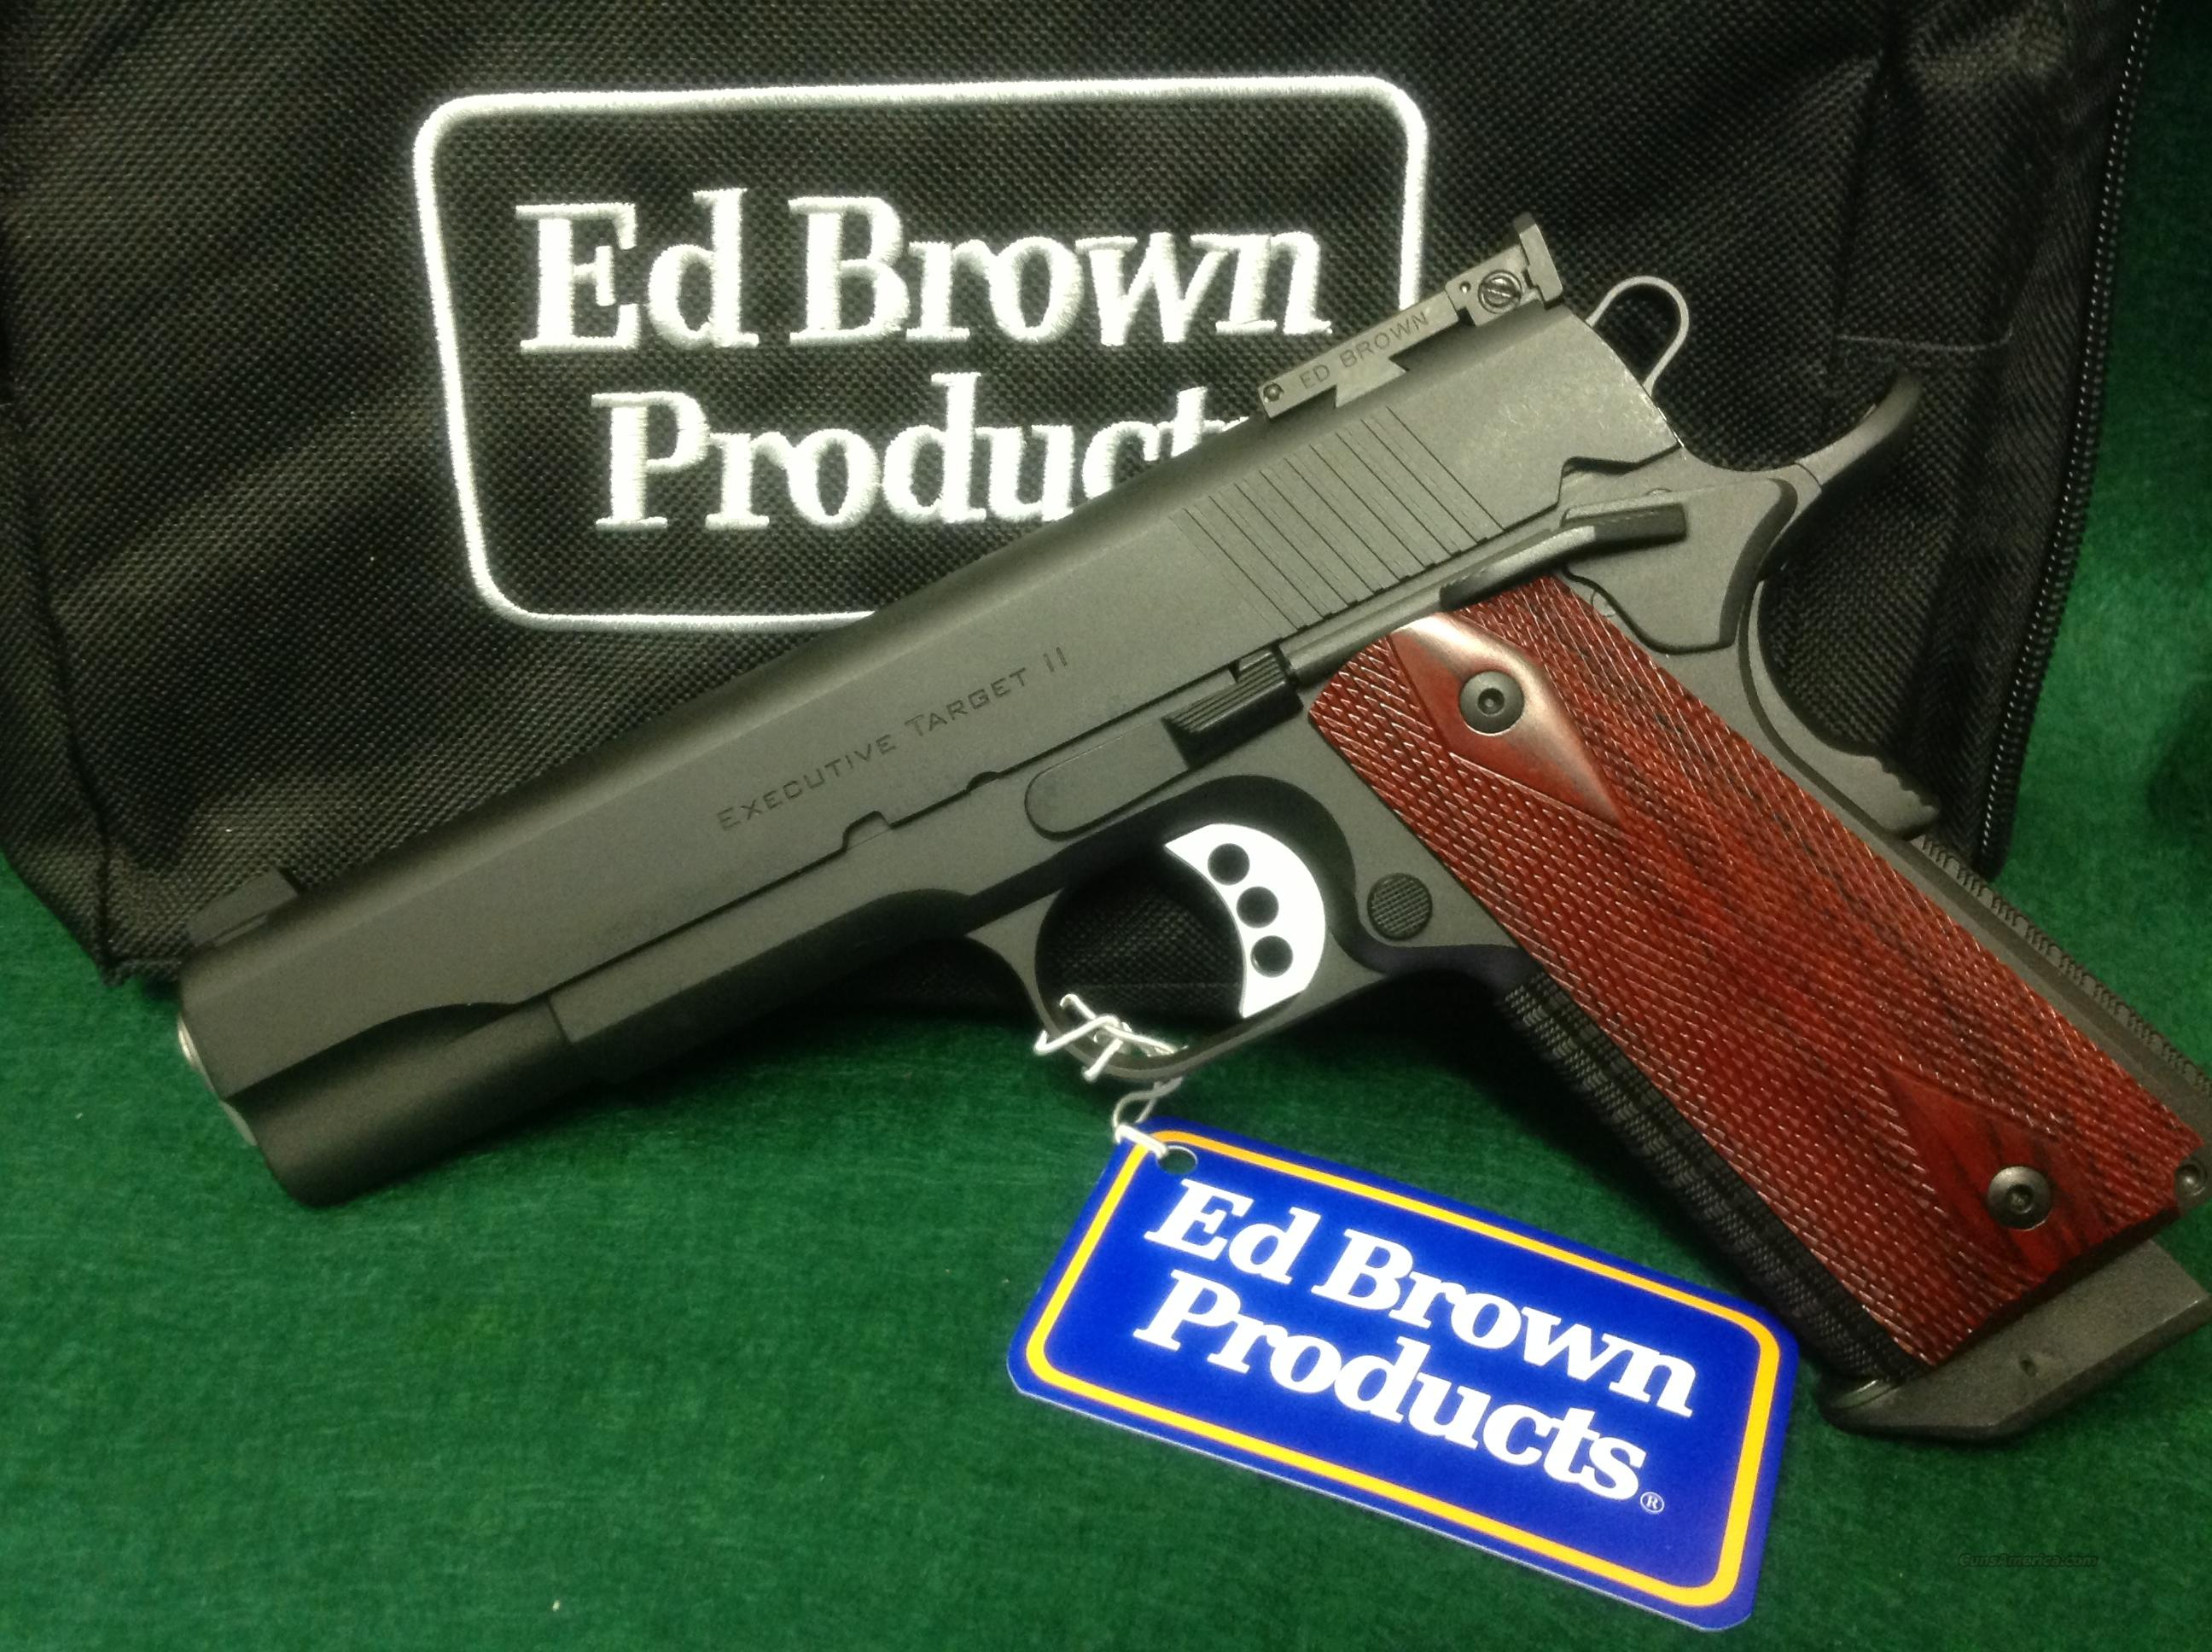 Ed Brown Executive Target II   Guns > Pistols > Ed Brown Pistols